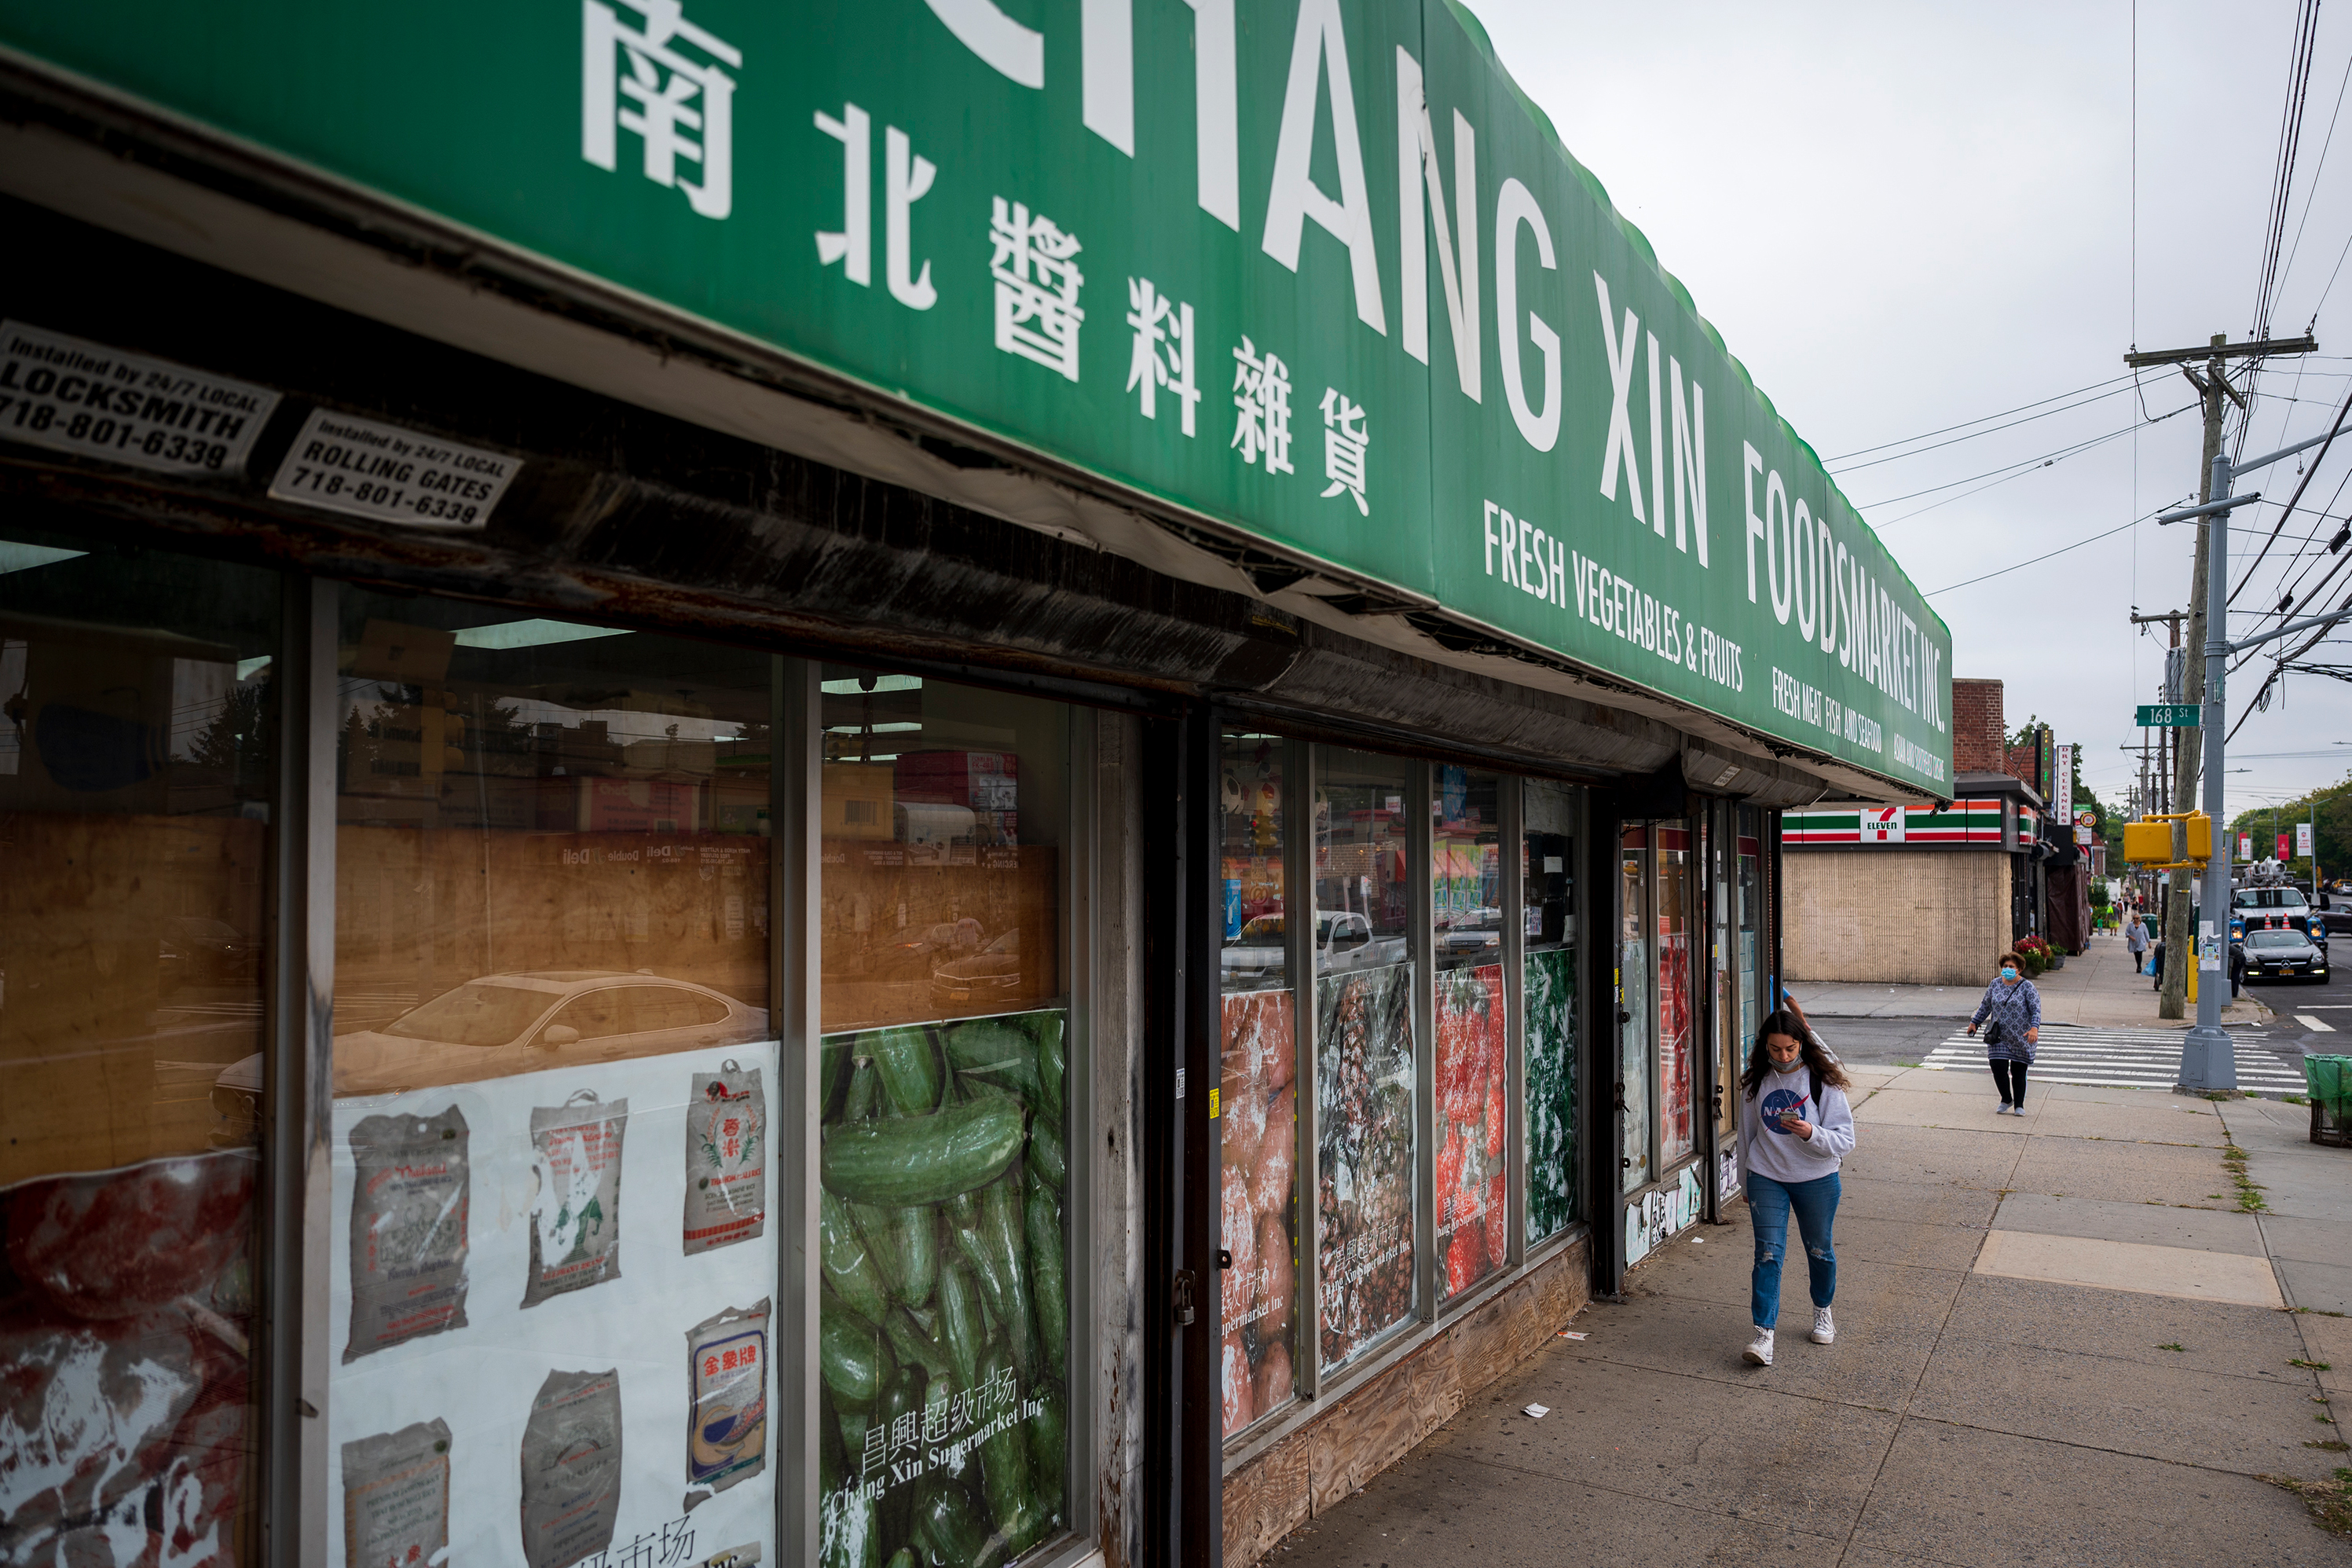 Pedestrians walk past a market at the intersection of Union Turnpike and 168th St in Hillcrest, Queens, Sept. 17, 2021.